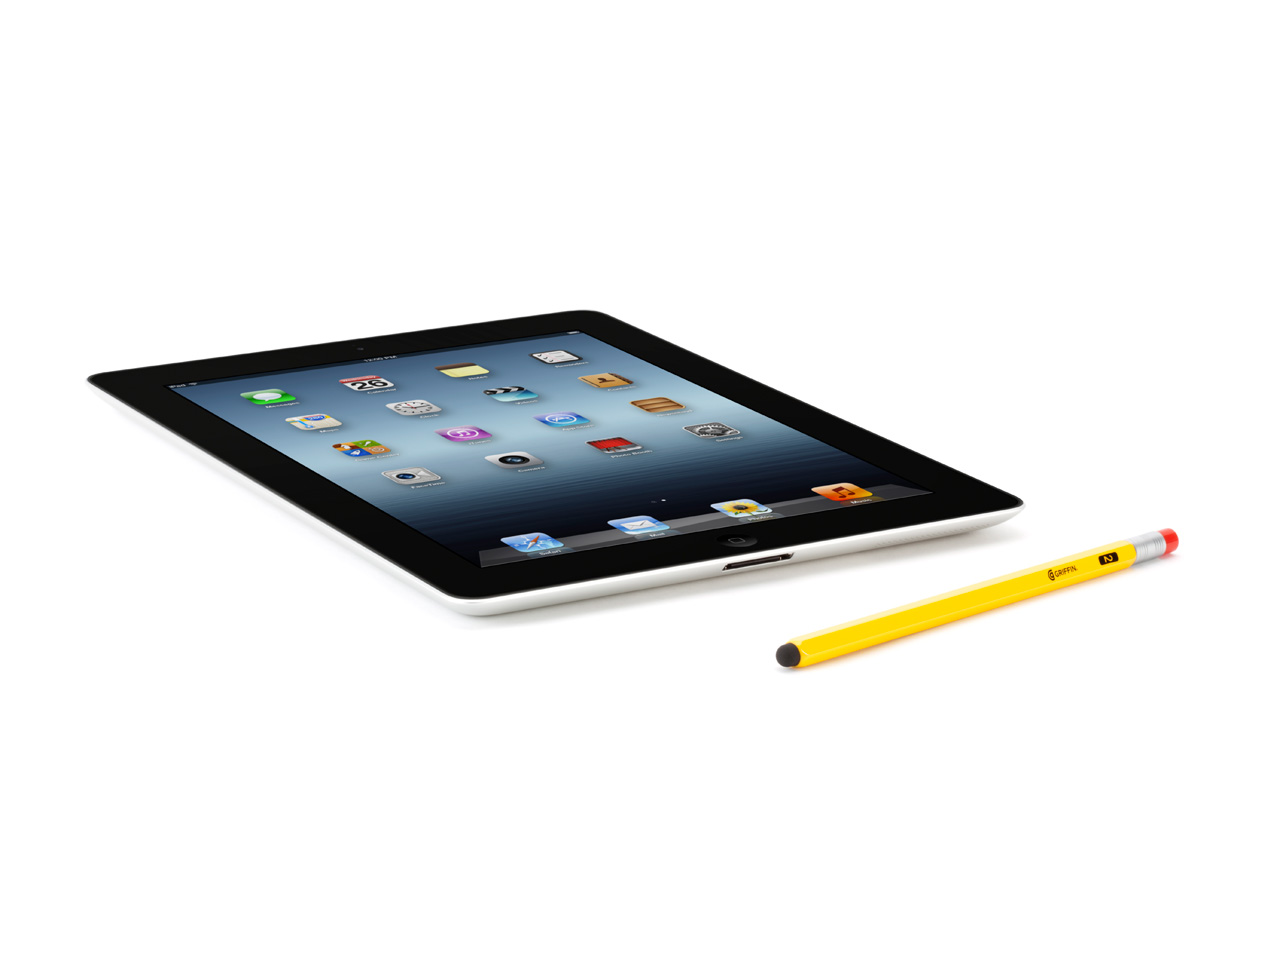 The No. 2 Pencil Stylus for Capacitve Touchscreens